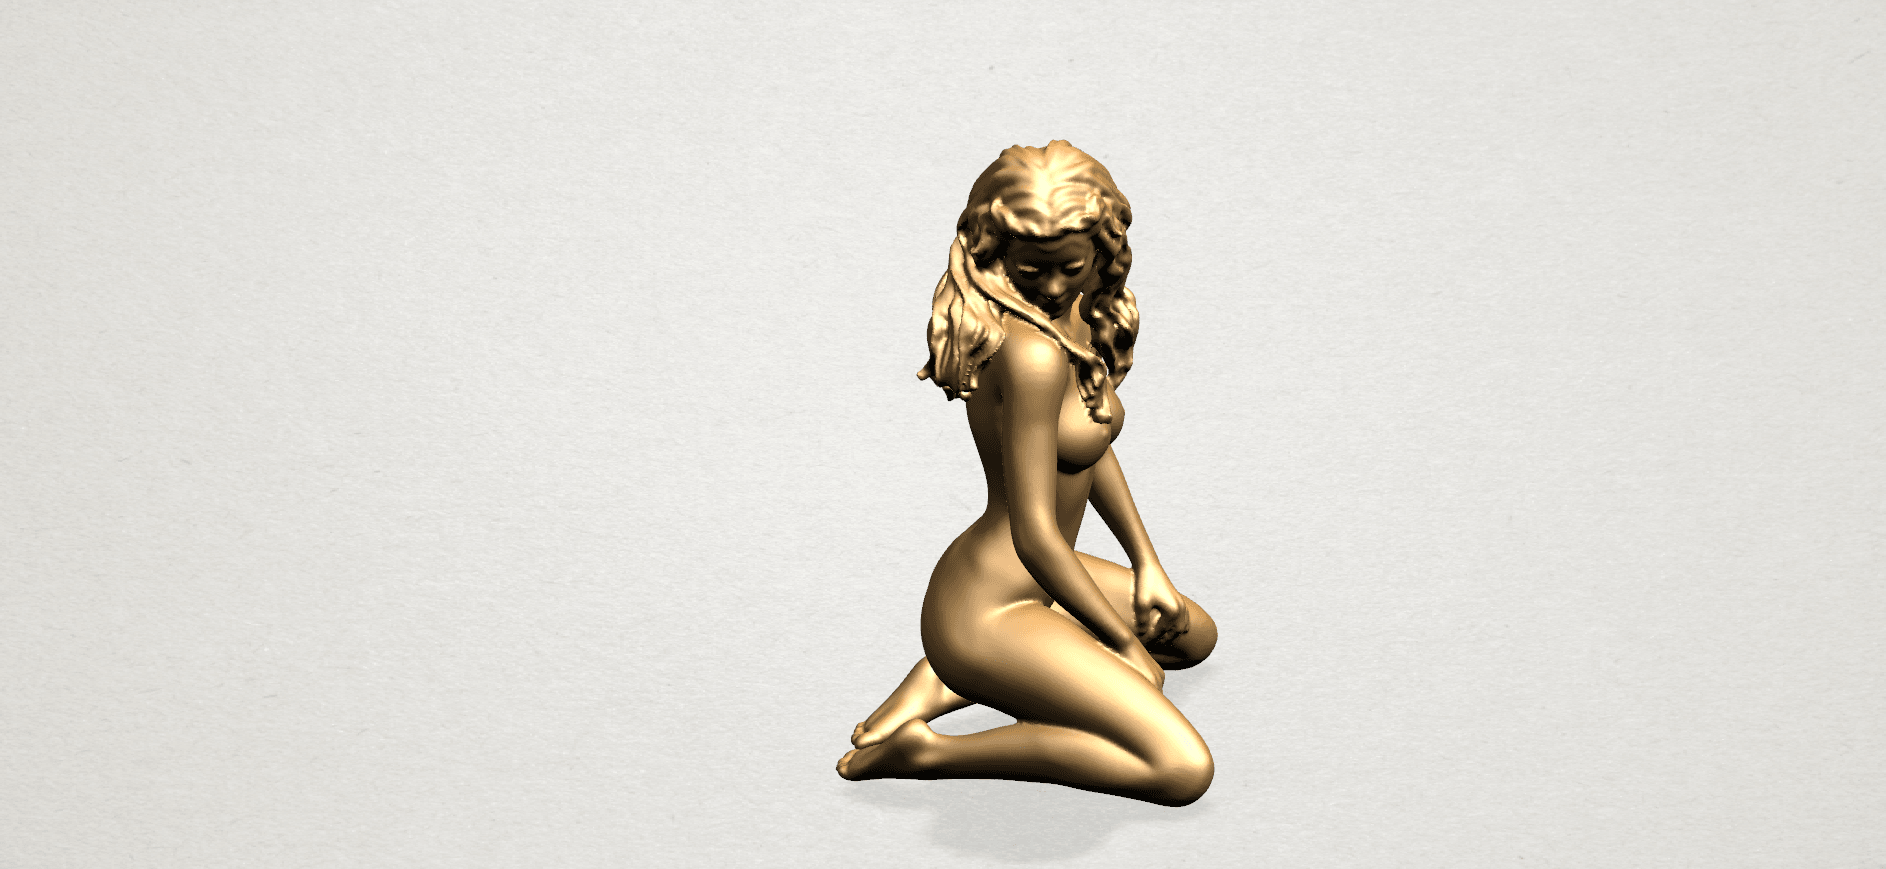 Naked girl - bended knees (II)-B07.png Download free STL file Naked girl - Bended Knees 02 -TOP MODEL • 3D printing object, GeorgesNikkei